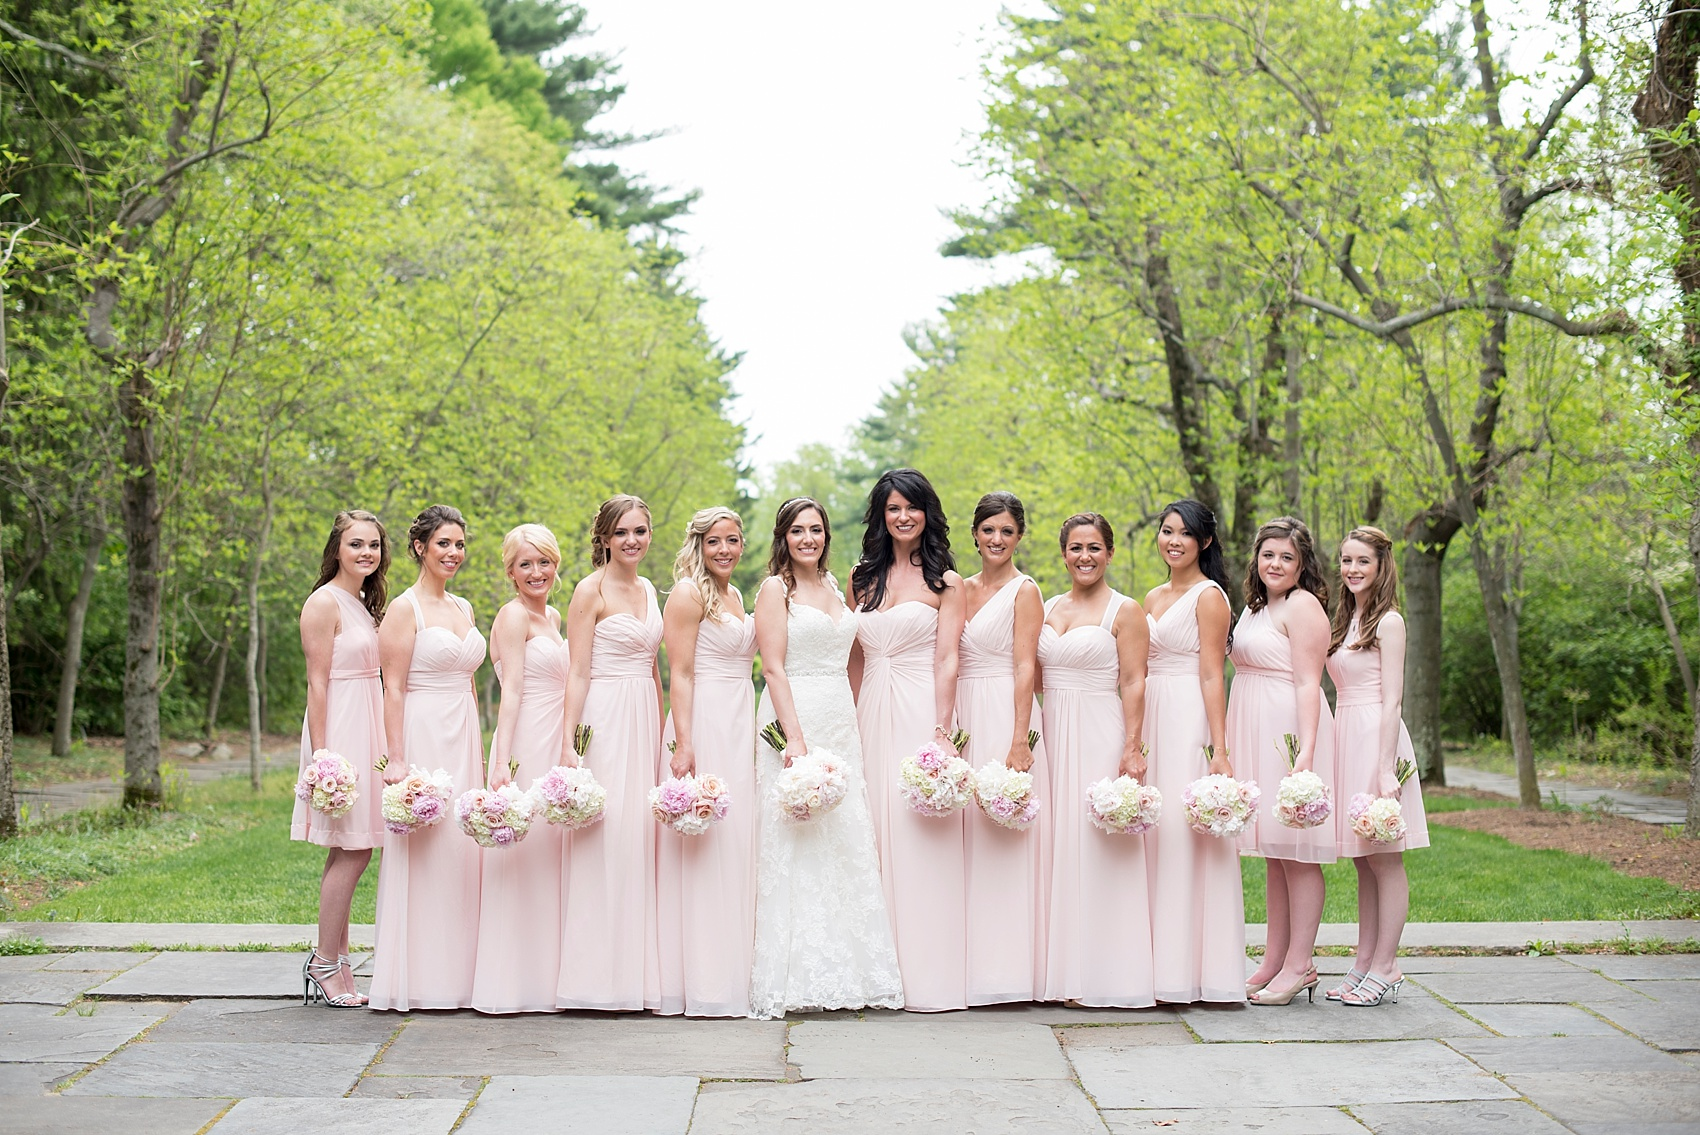 Bride And Groom Mansion Image Skylands Manor Wedding Photos By Nj Photographer Mikkel Paige Bridesmaids Looking Beautiful In Blush